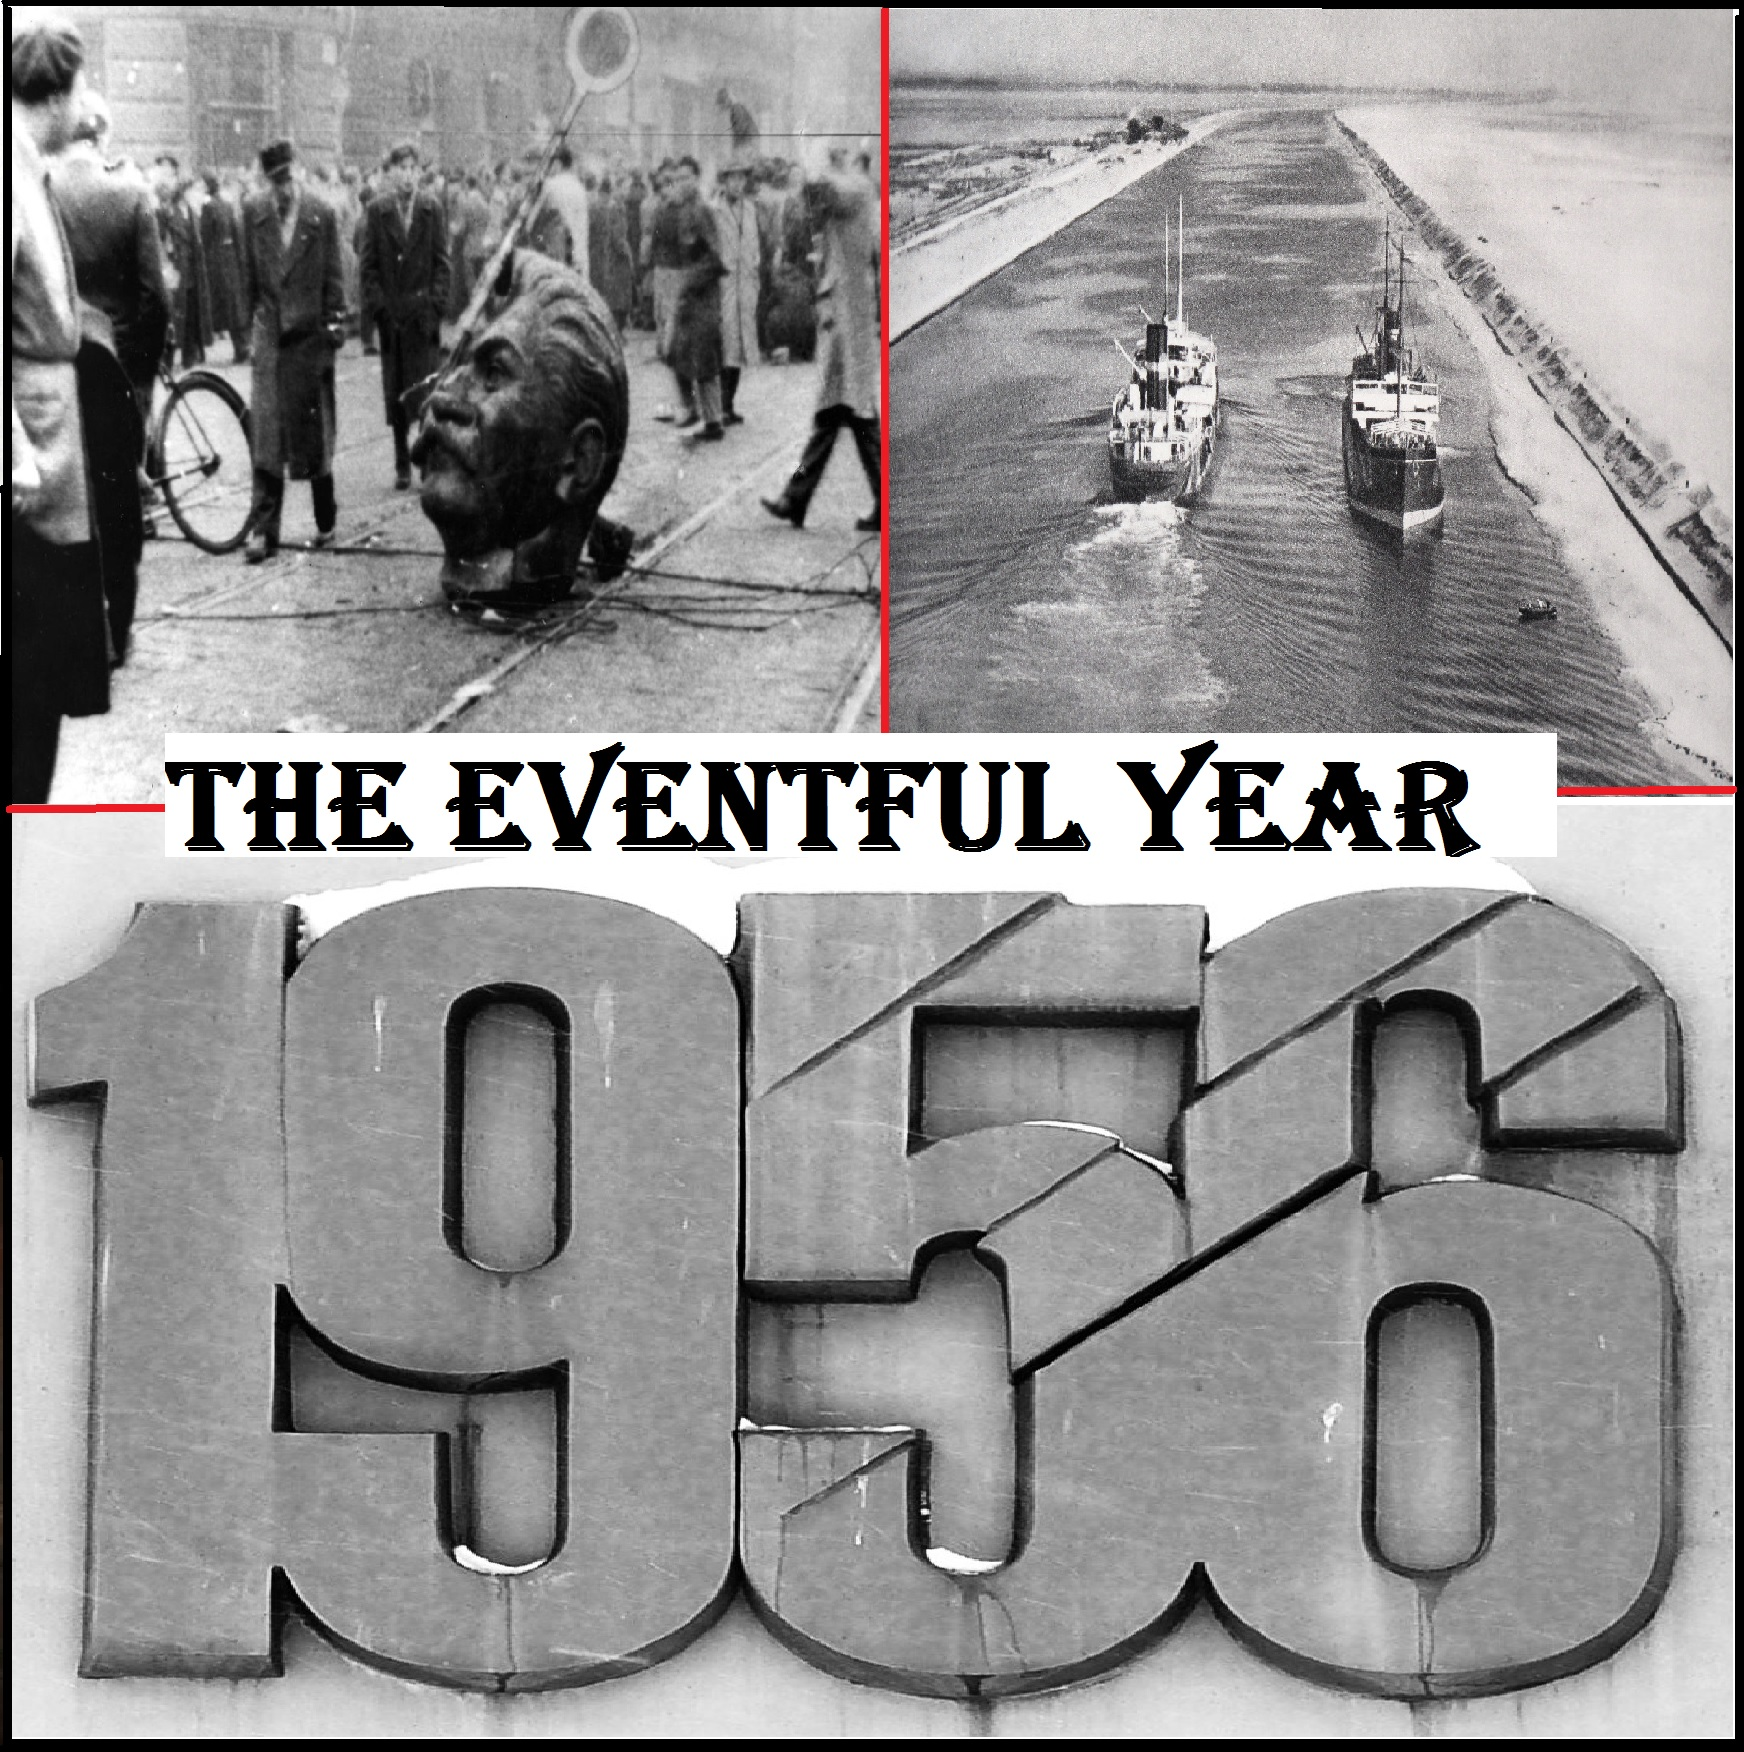 1956 - The Eventful Year  is a series available in part to all listeners, and in full  to Patrons at the $5 level . It's part of my goal to diversify my content base and reach more people with a large portfolio of history podcasts.